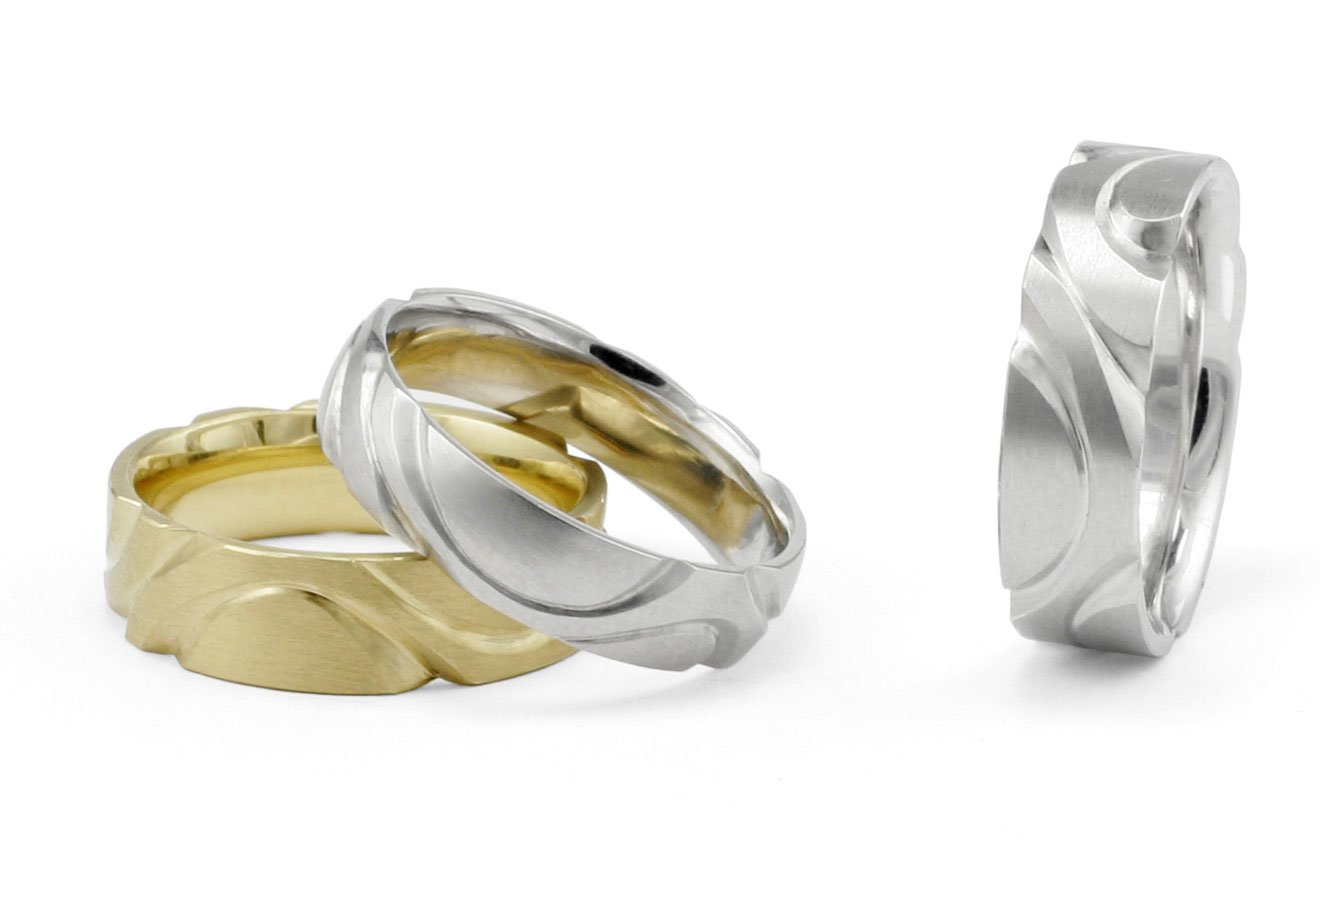 Unusual hand carved men's wedding bands in platinum and yellow gold